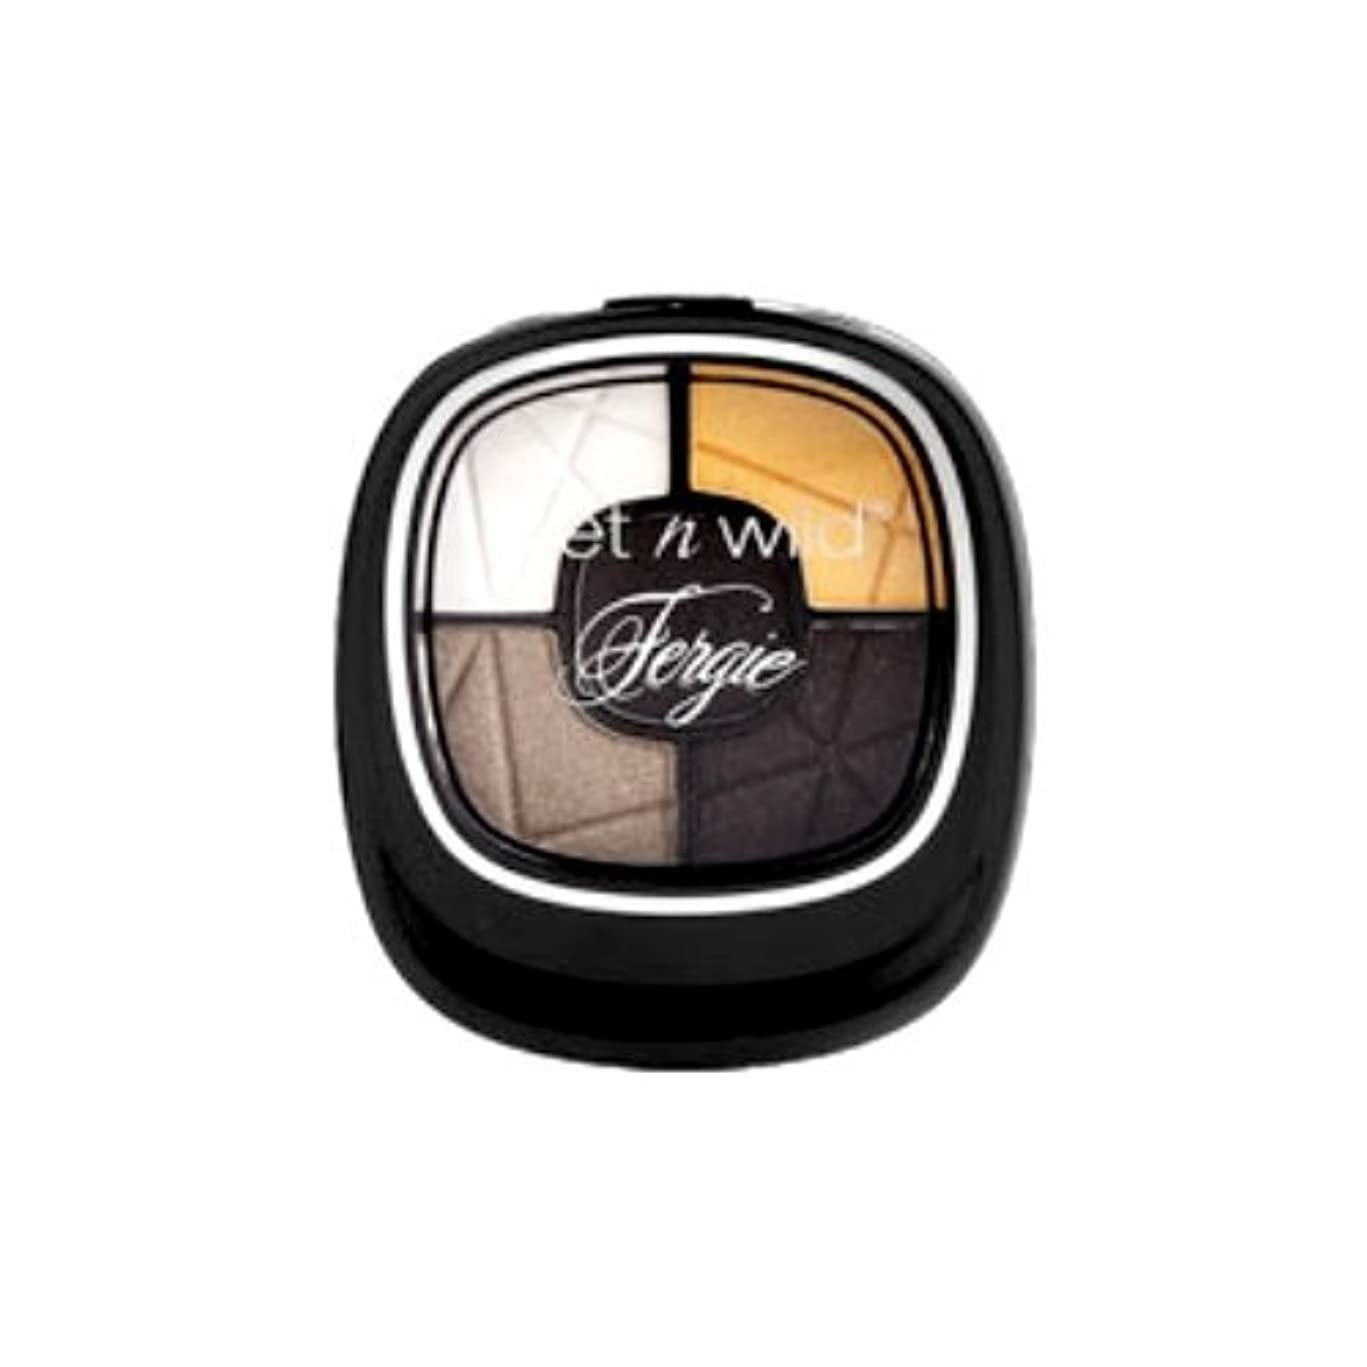 アライメント慈善豊富な(3 Pack) Wet N Wild FERGIE Photo Op Eyeshadow - Metropolitan Lights (並行輸入品)